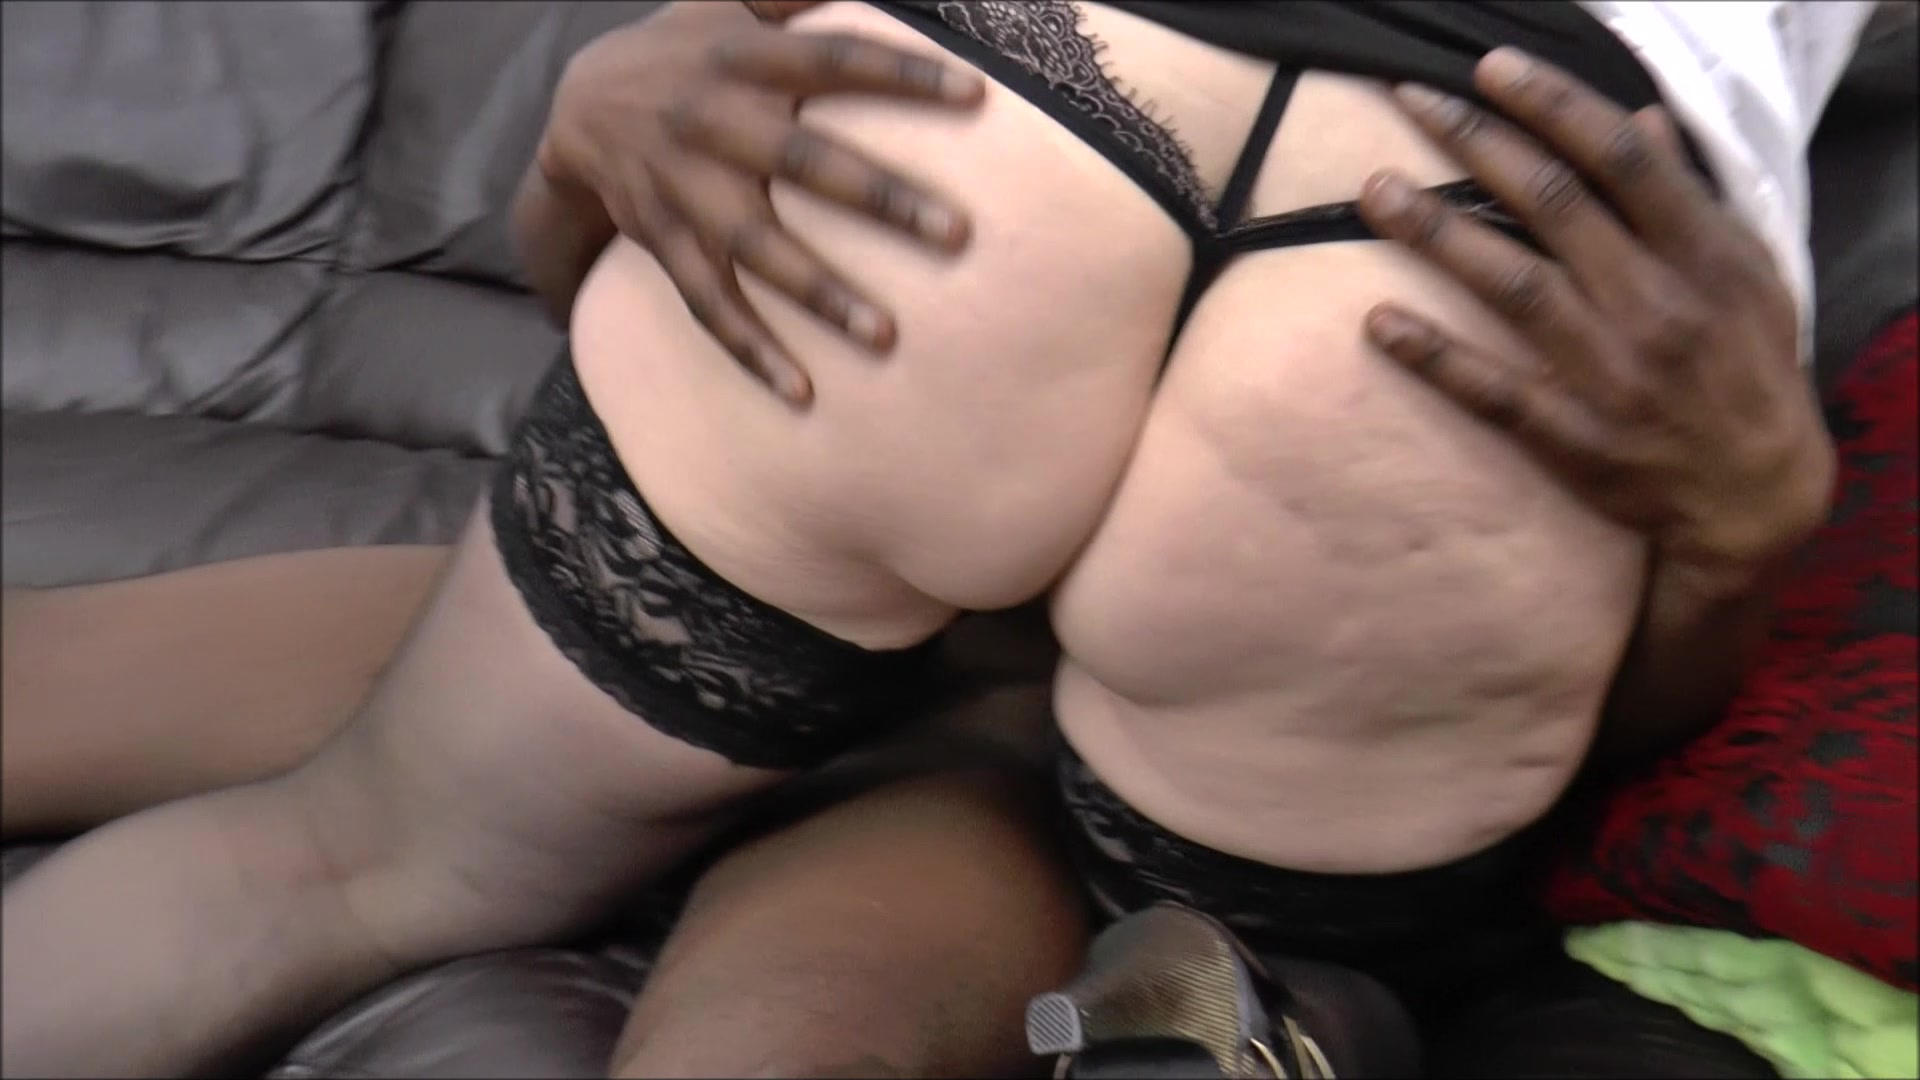 Slut loads interracial are absolutely